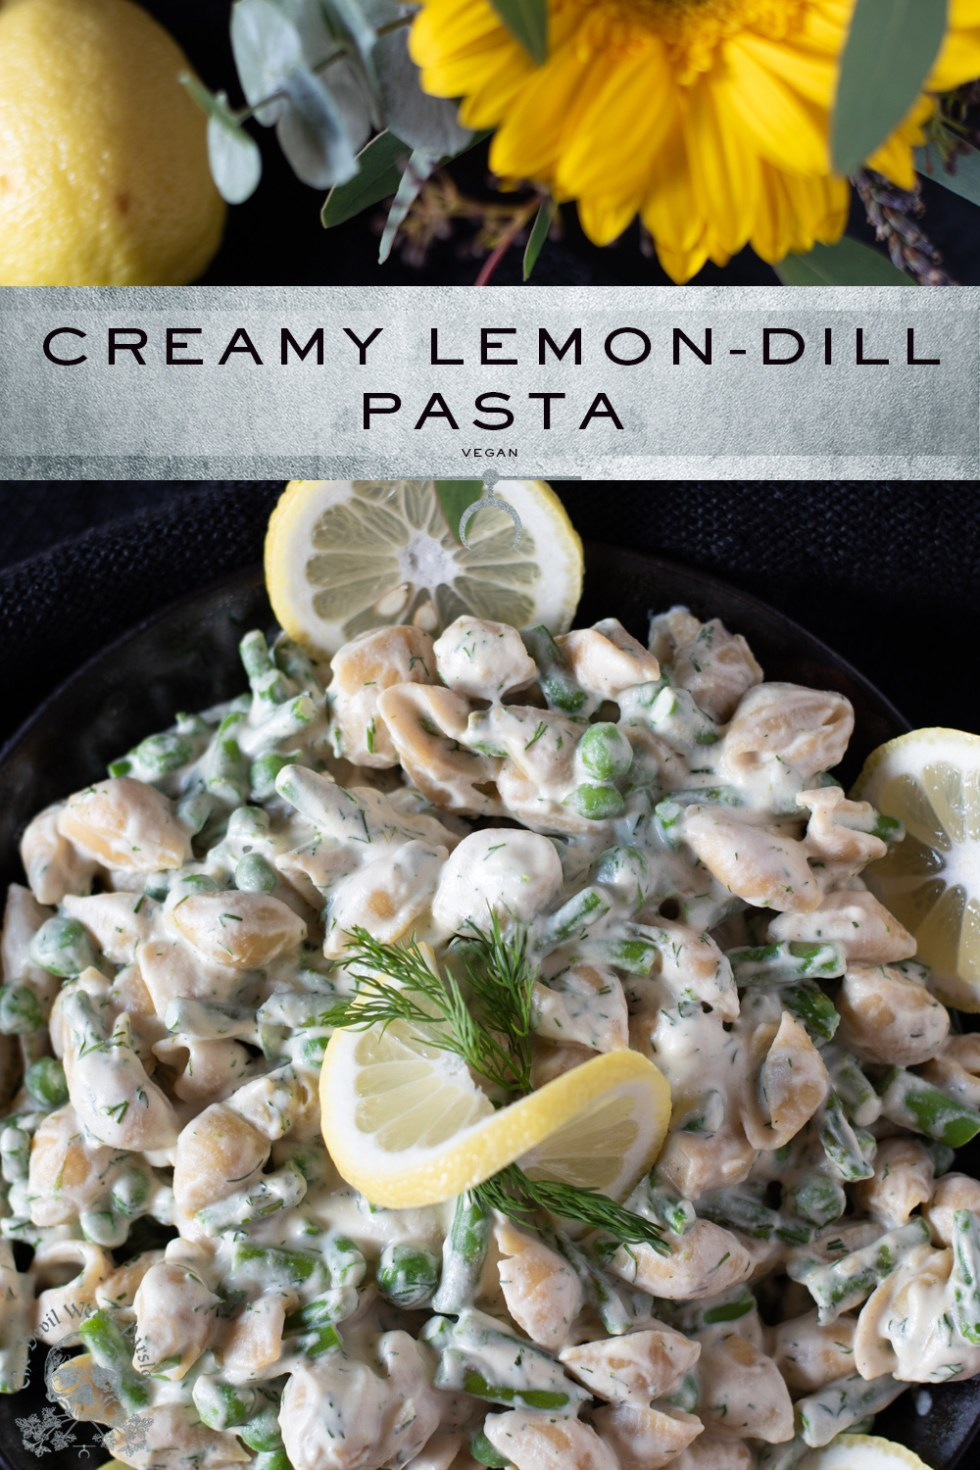 Lemon, dill, and asparagus just SCREAM summer, peas complement, and a cream sauce made from cashews makes this a calorie dense recovery meal!